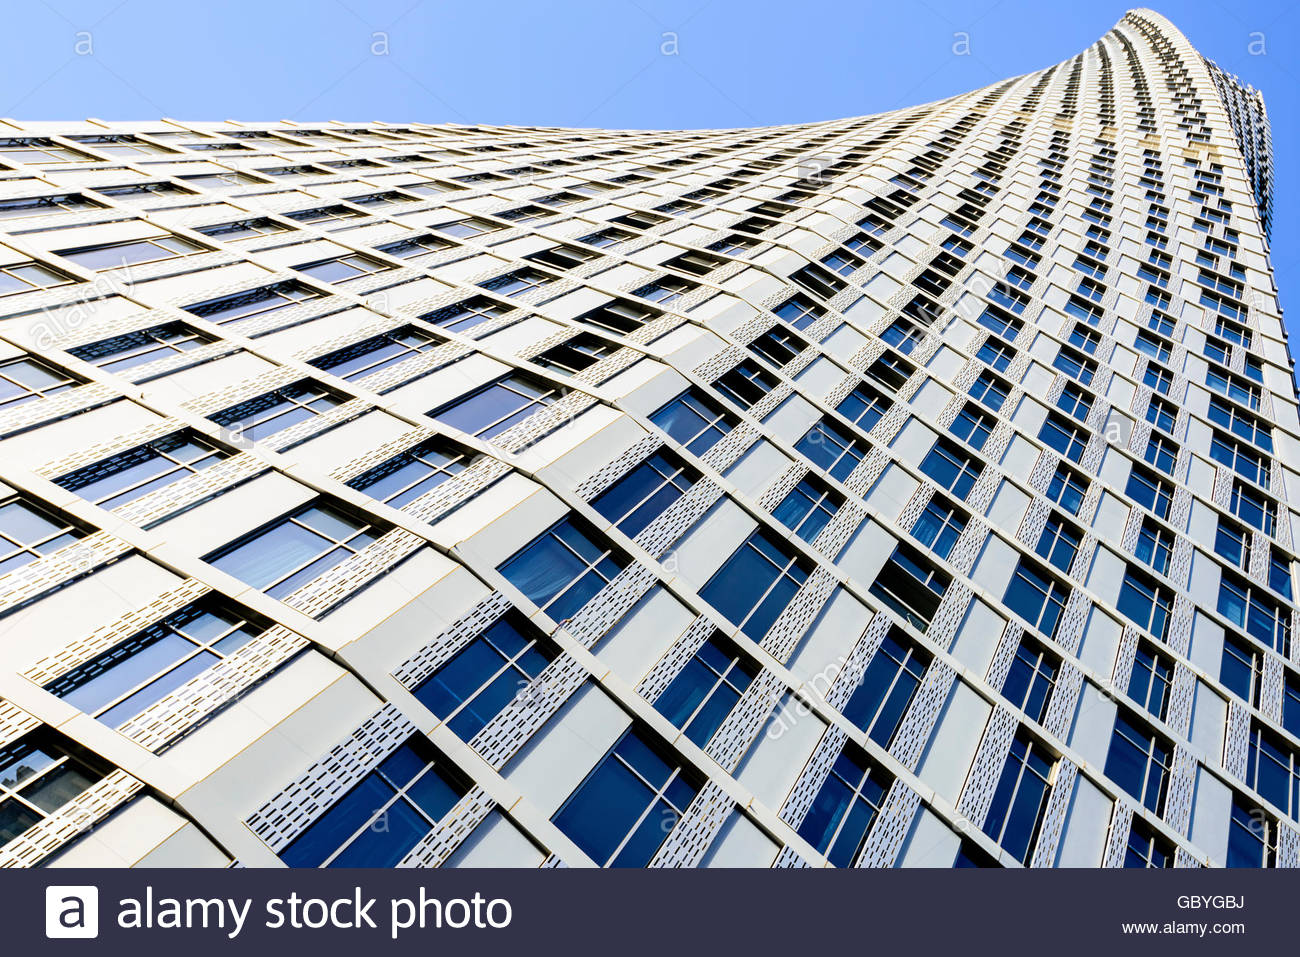 Cayan Tower, known as Infinity Tower is a 306-metre-tall (1,004 ft), 73-story skyscraper in Dubai, United Arab Emirates - Stock Image